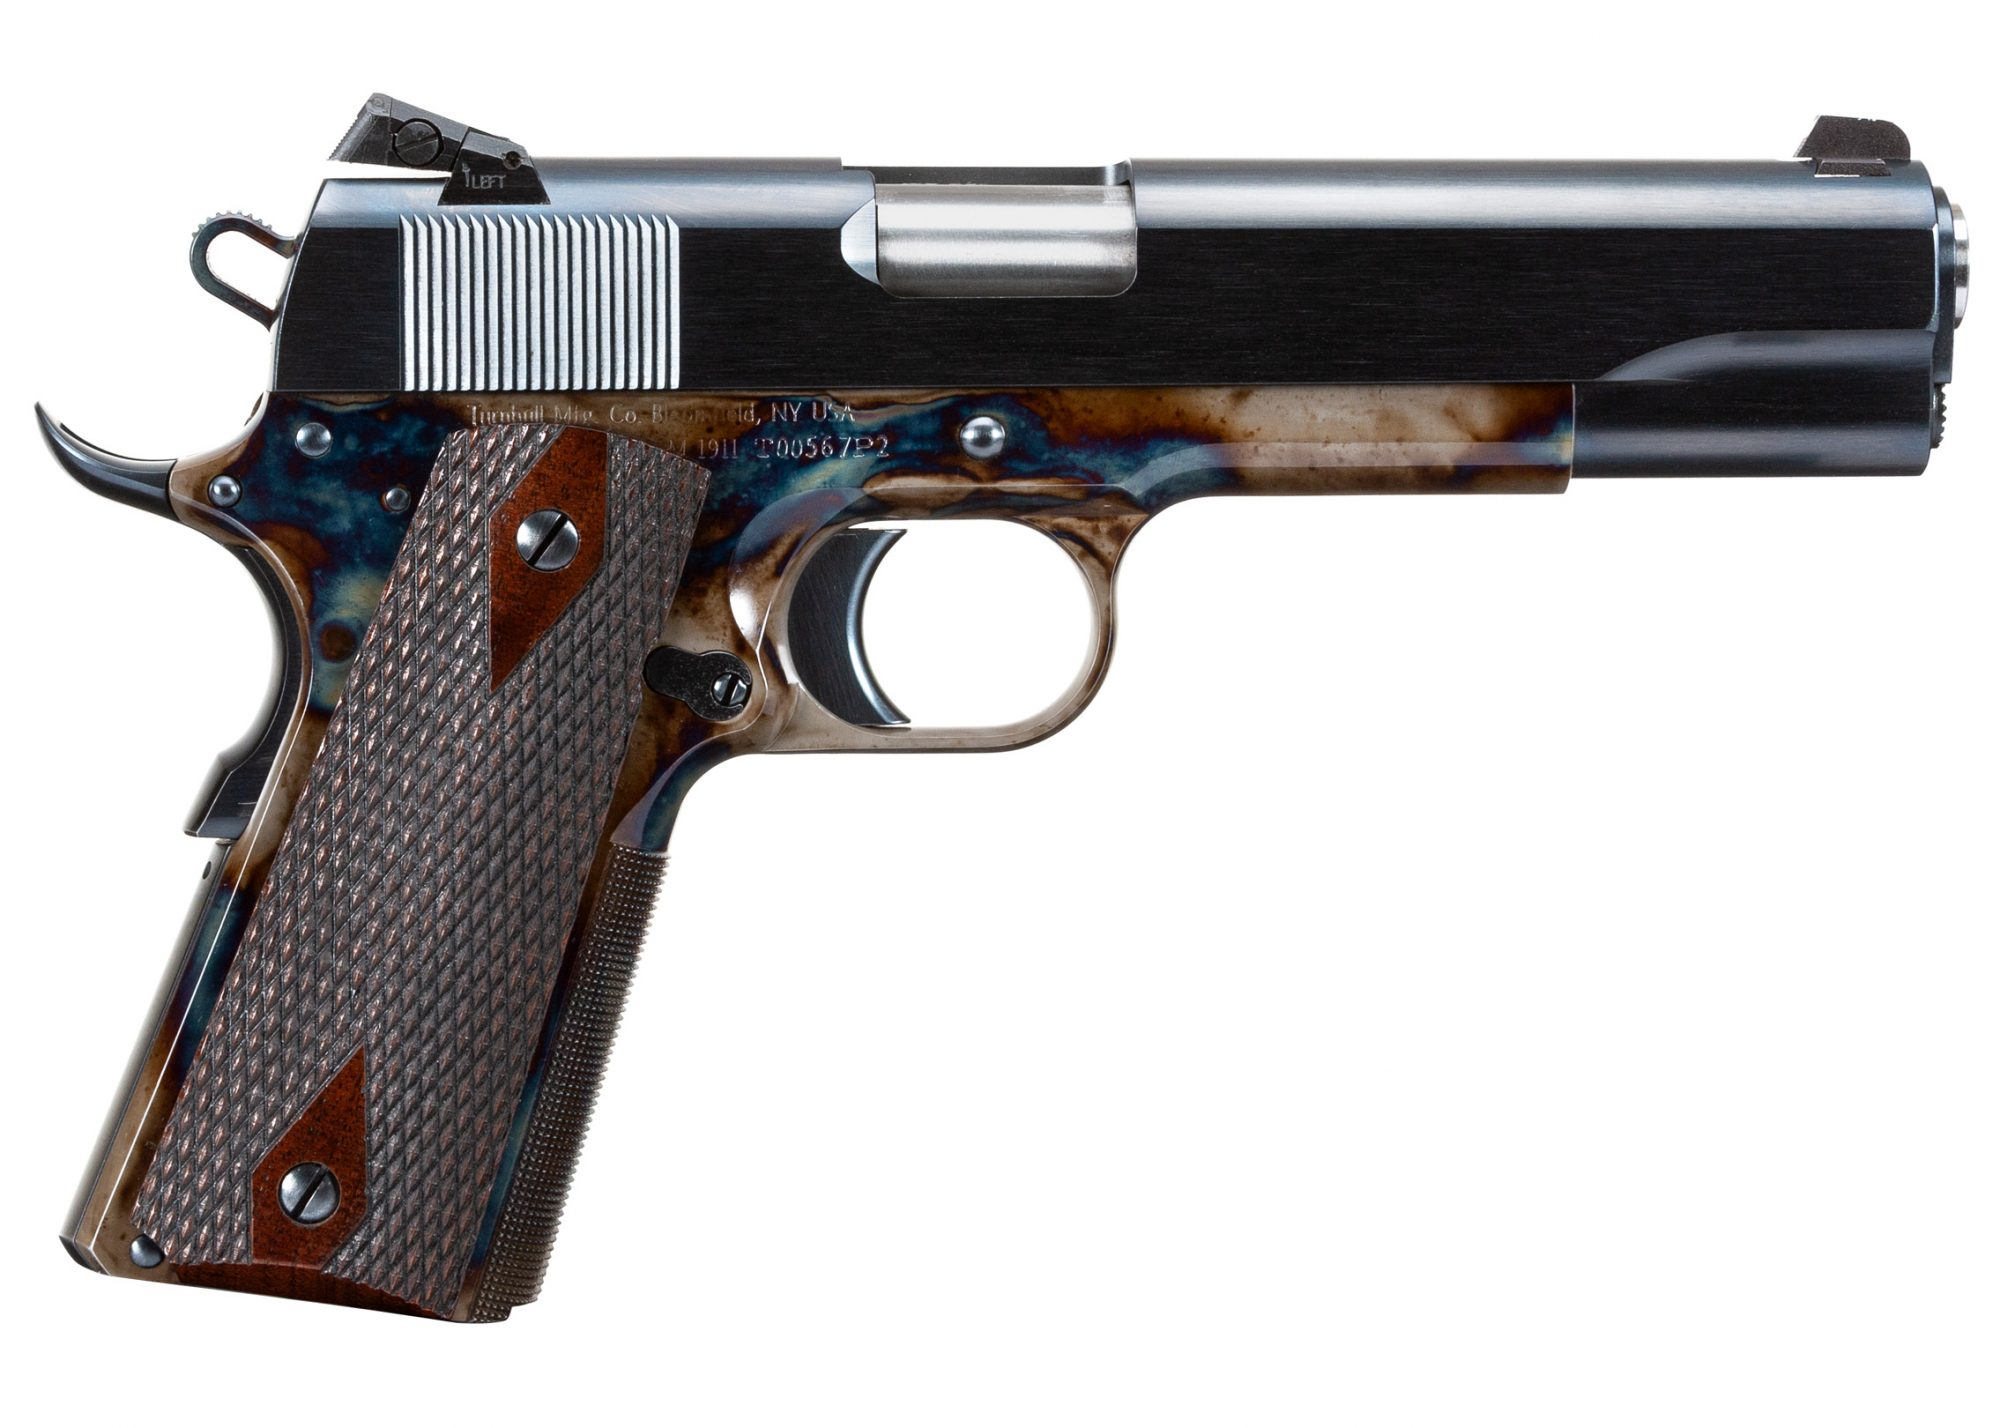 Turnbull Government Heritage Model 1911 with color case hardened frame and charcoal blued slide